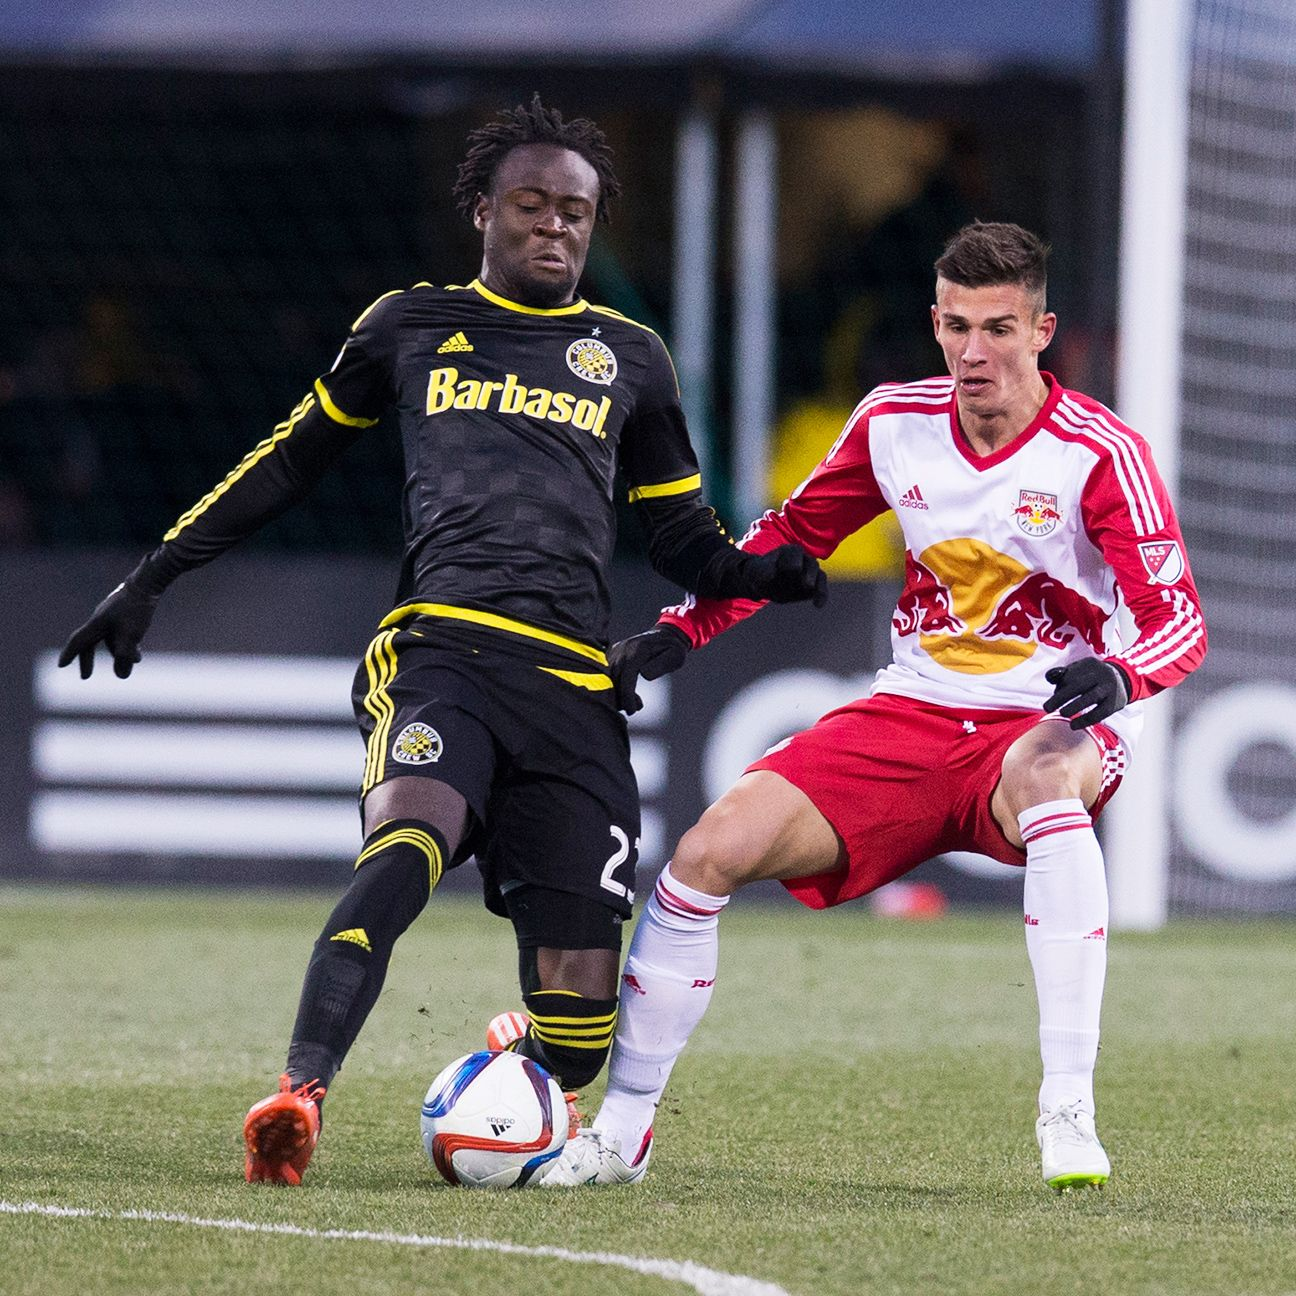 Matt Miazga, right, and the Red Bulls' defense will have their hands full with Kei Kamara, left.